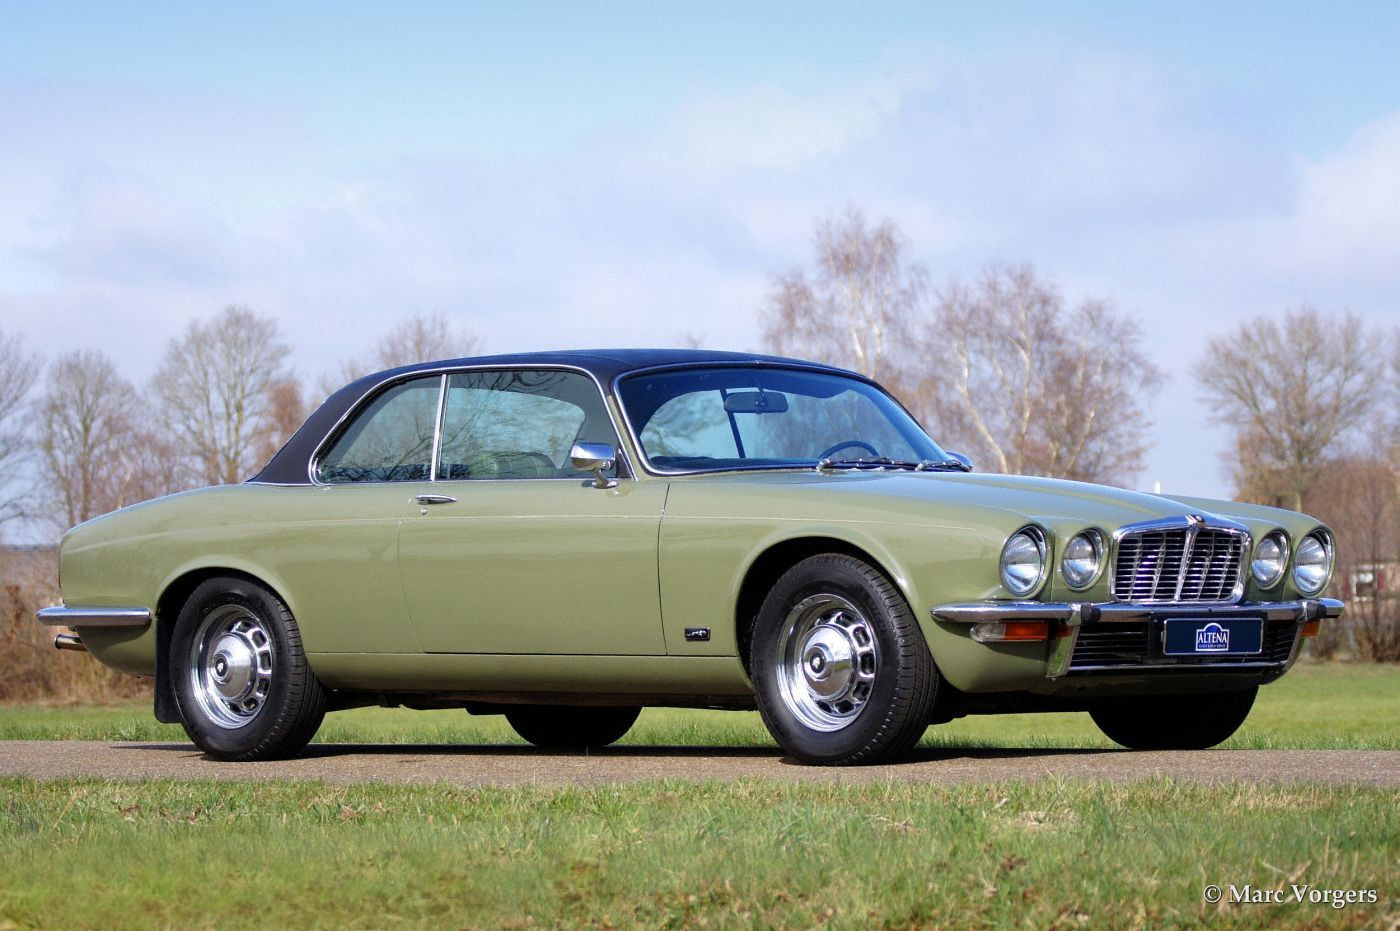 1973 Jaguar XJ6 4.2 Series II